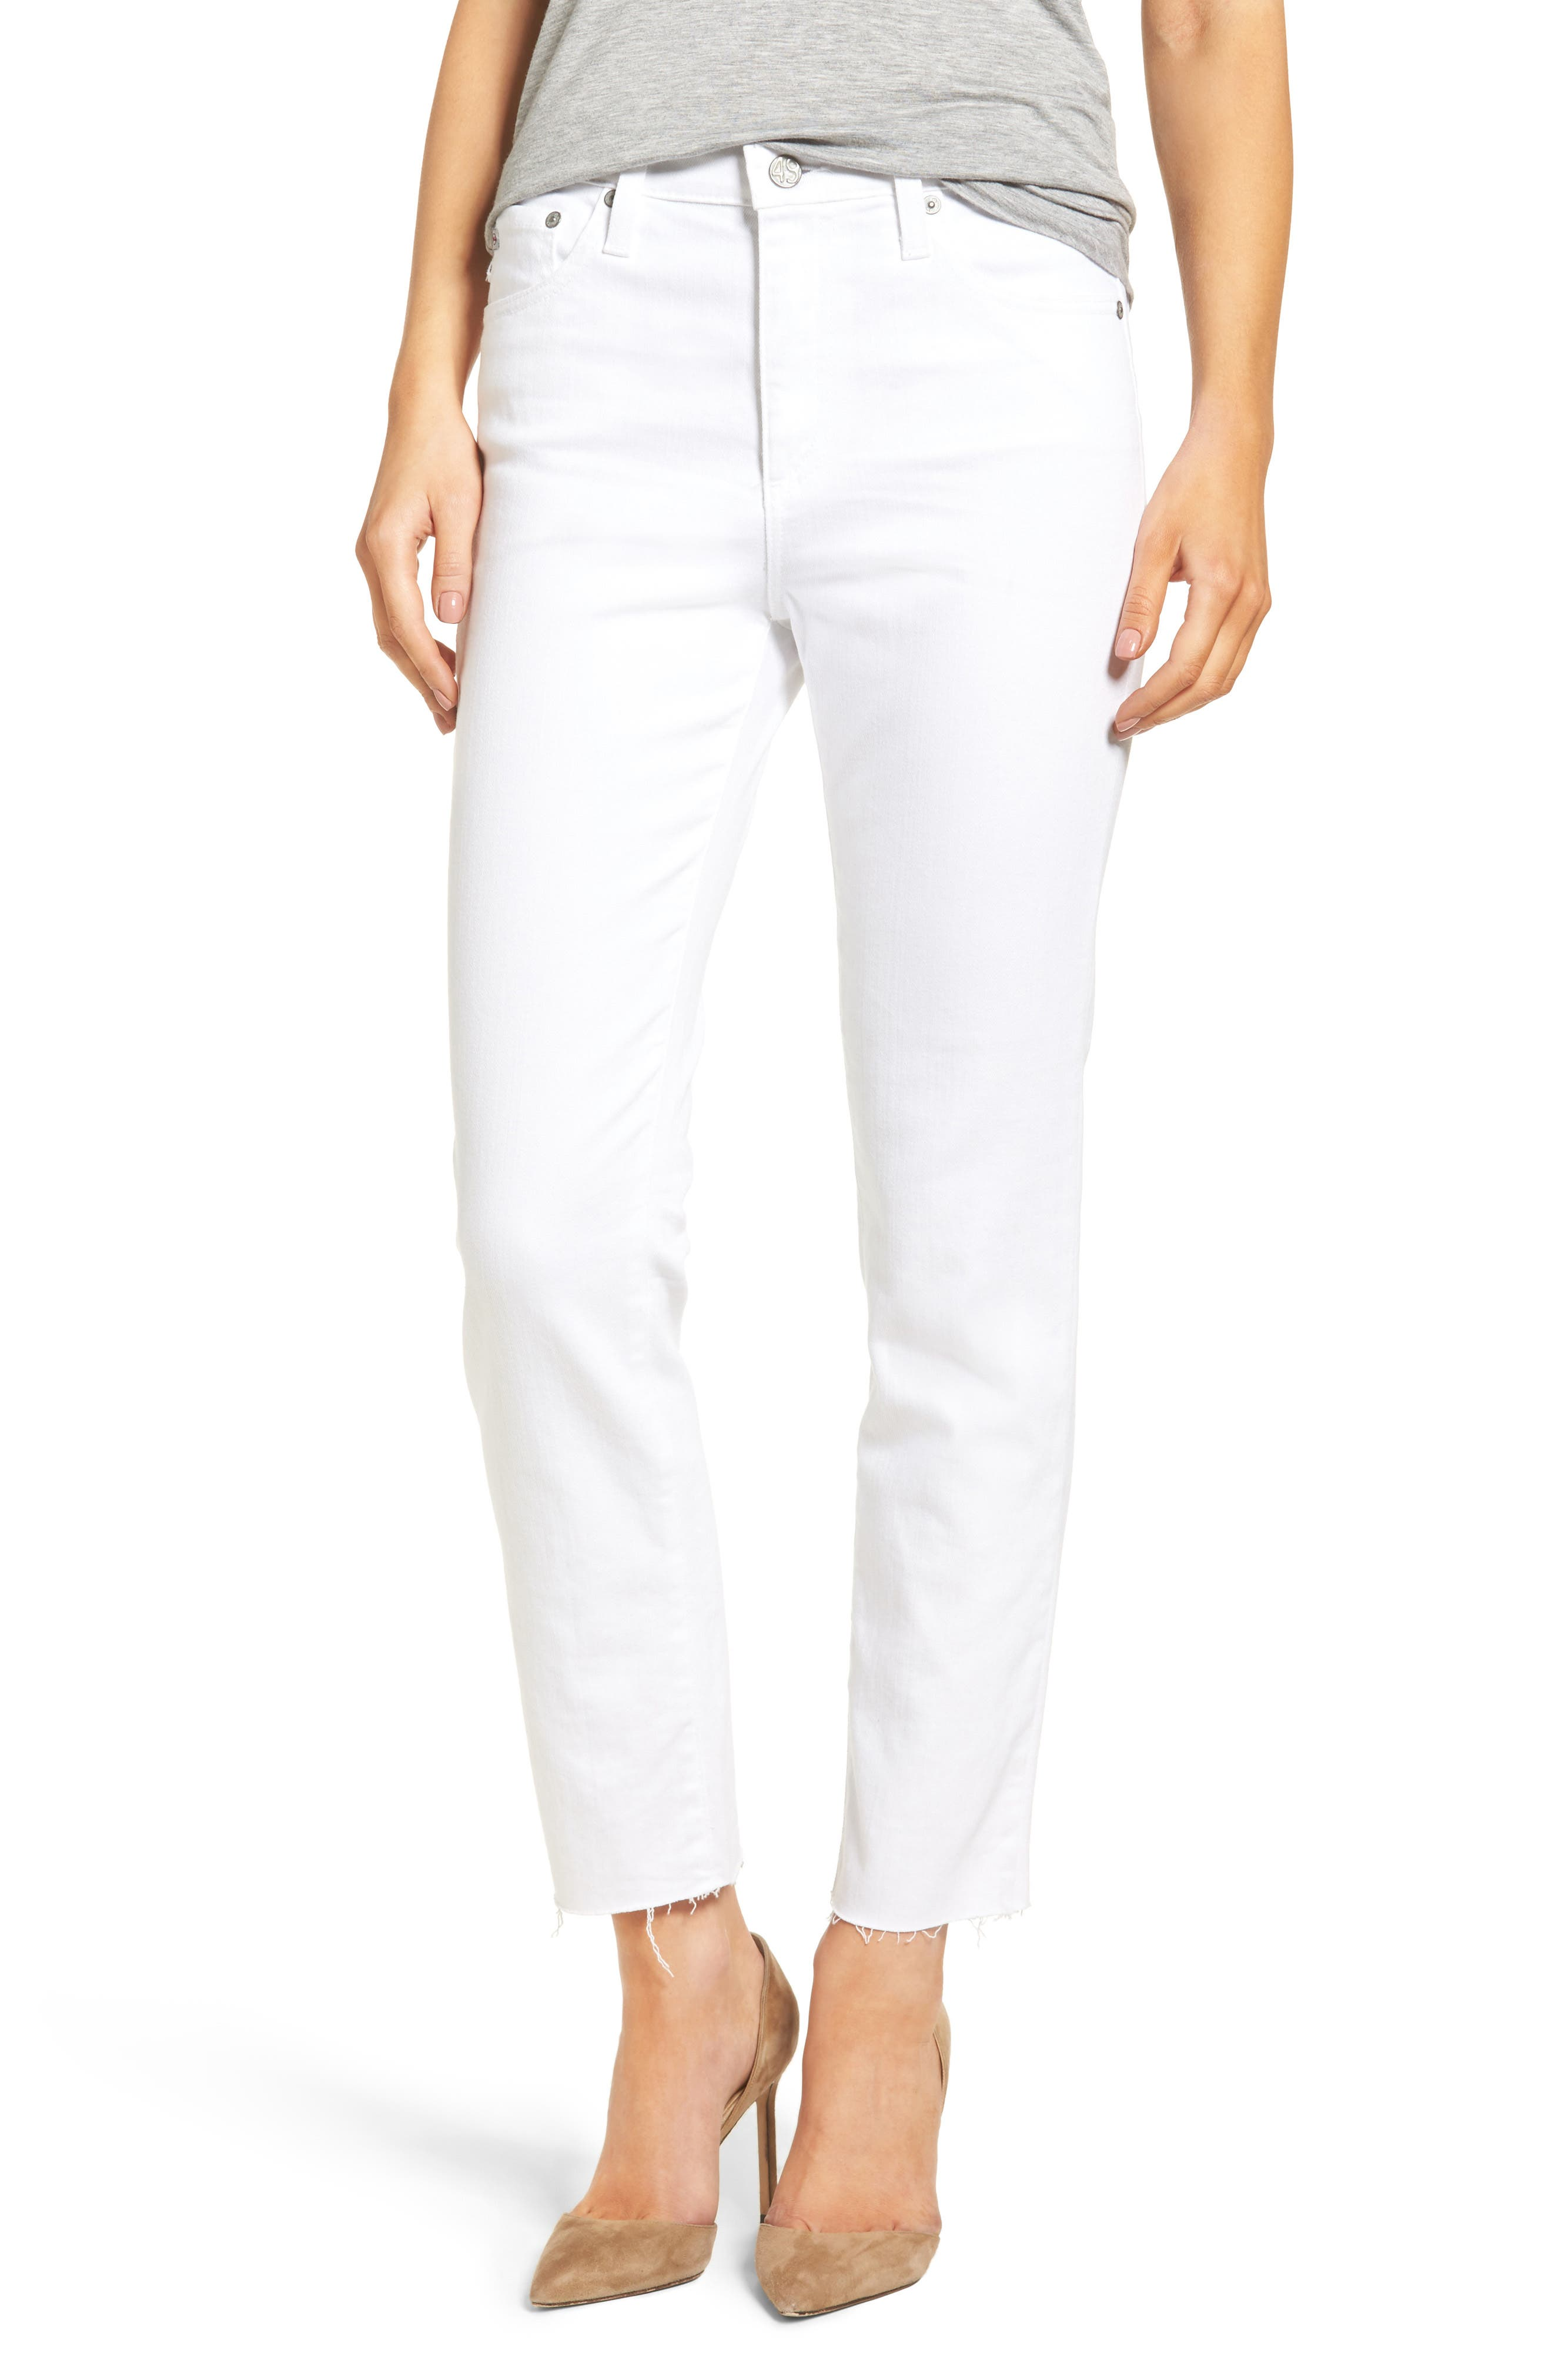 The Isabelle High Waist Crop Straight Leg Jeans,                             Main thumbnail 1, color,                             01 YEARS - WHITE